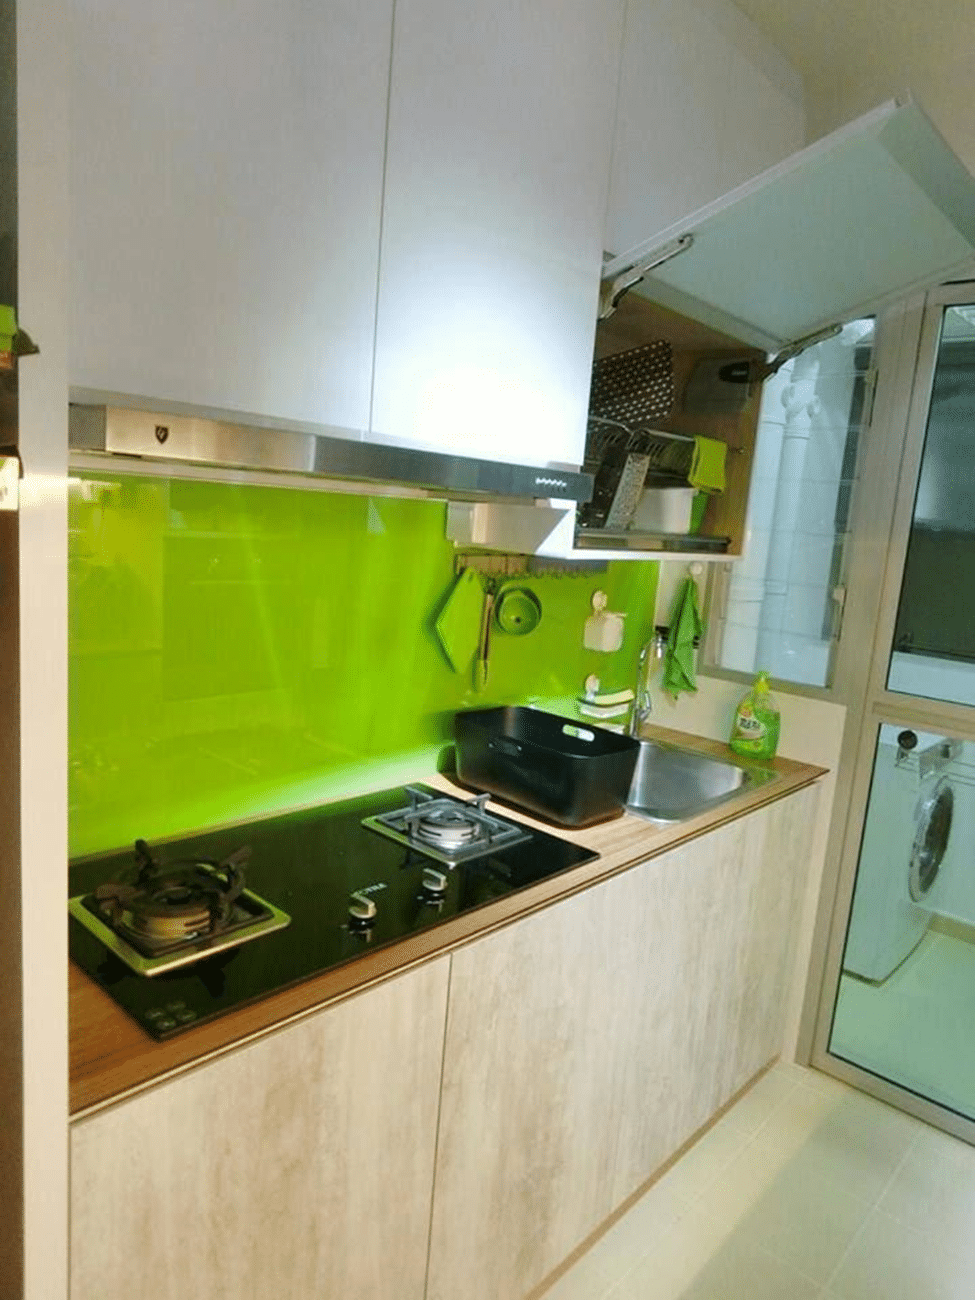 Vibrant kitchen backsplash Kitchen backsplash ideas singapore